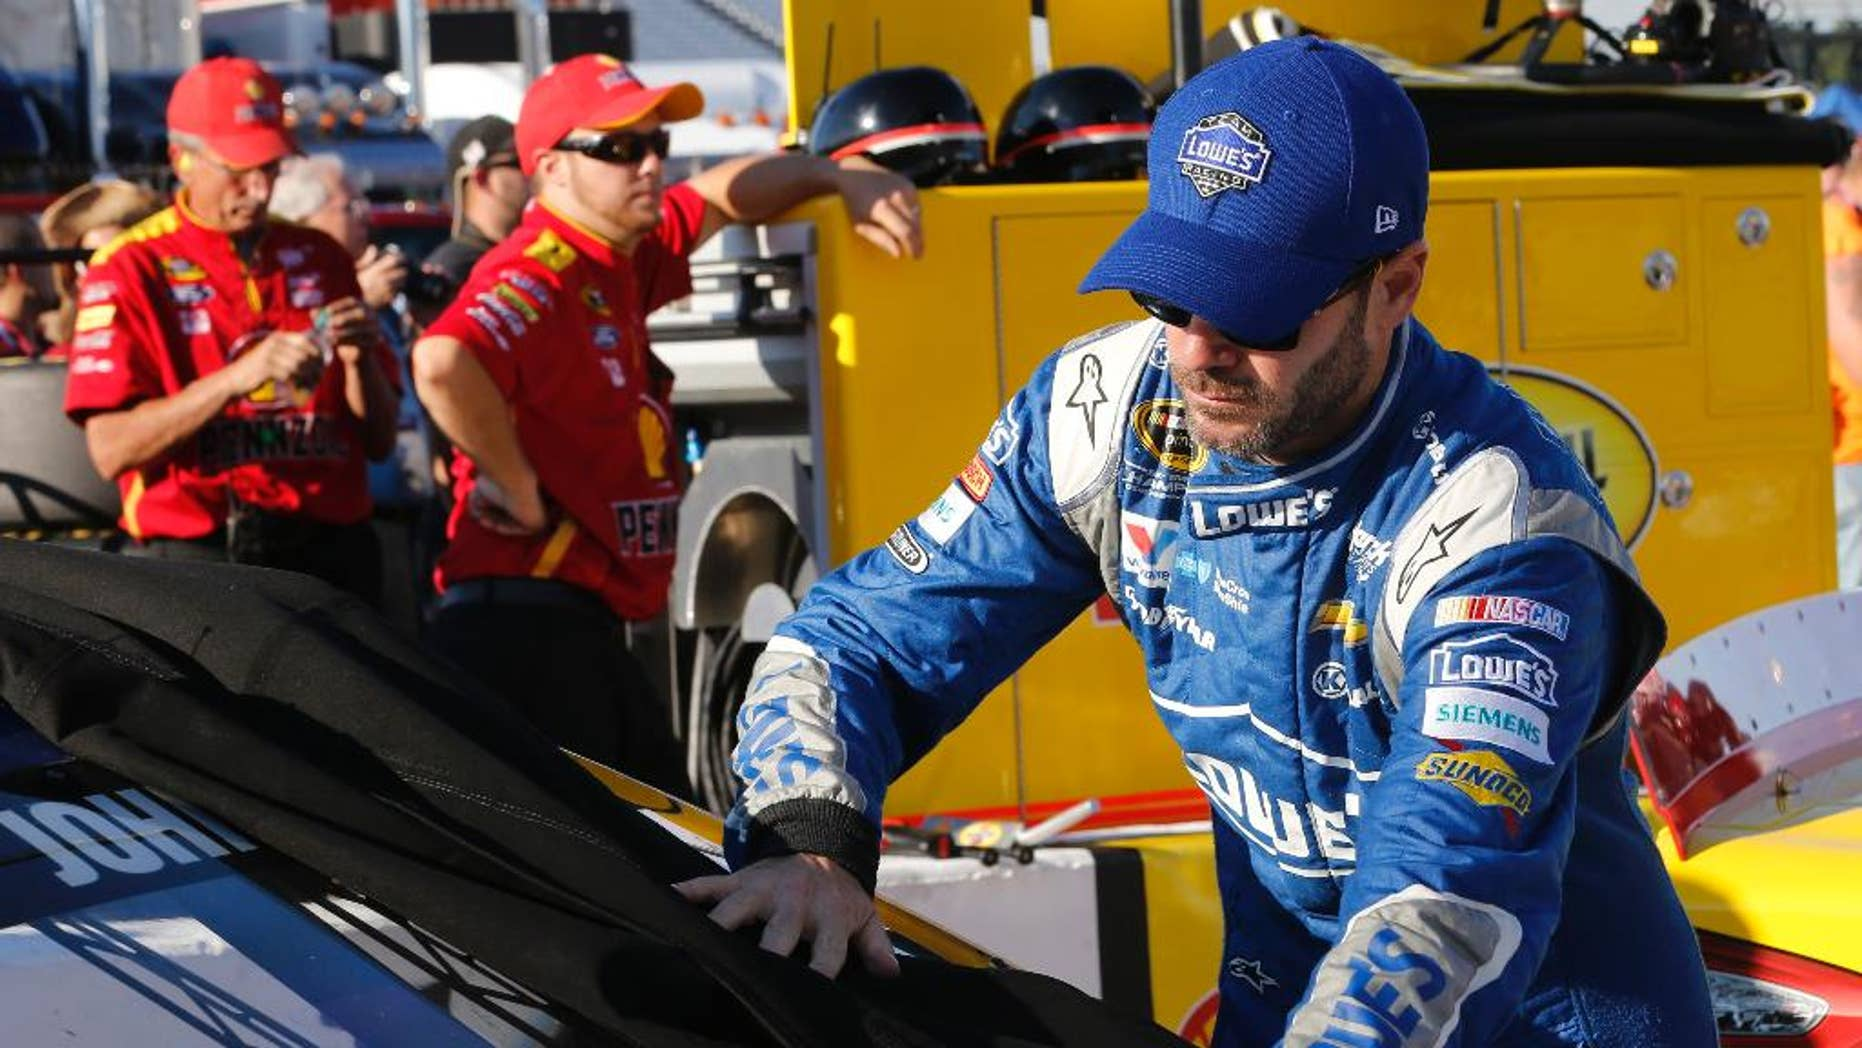 Jimmie Johnson takes a cover off his car prior to qualifying for Saturday's NASCAR Sprint Cup auto race at Richmond International Raceway in Richmond, Va., Friday, Sept. 11, 2015. (AP Photo/Steve Helber)